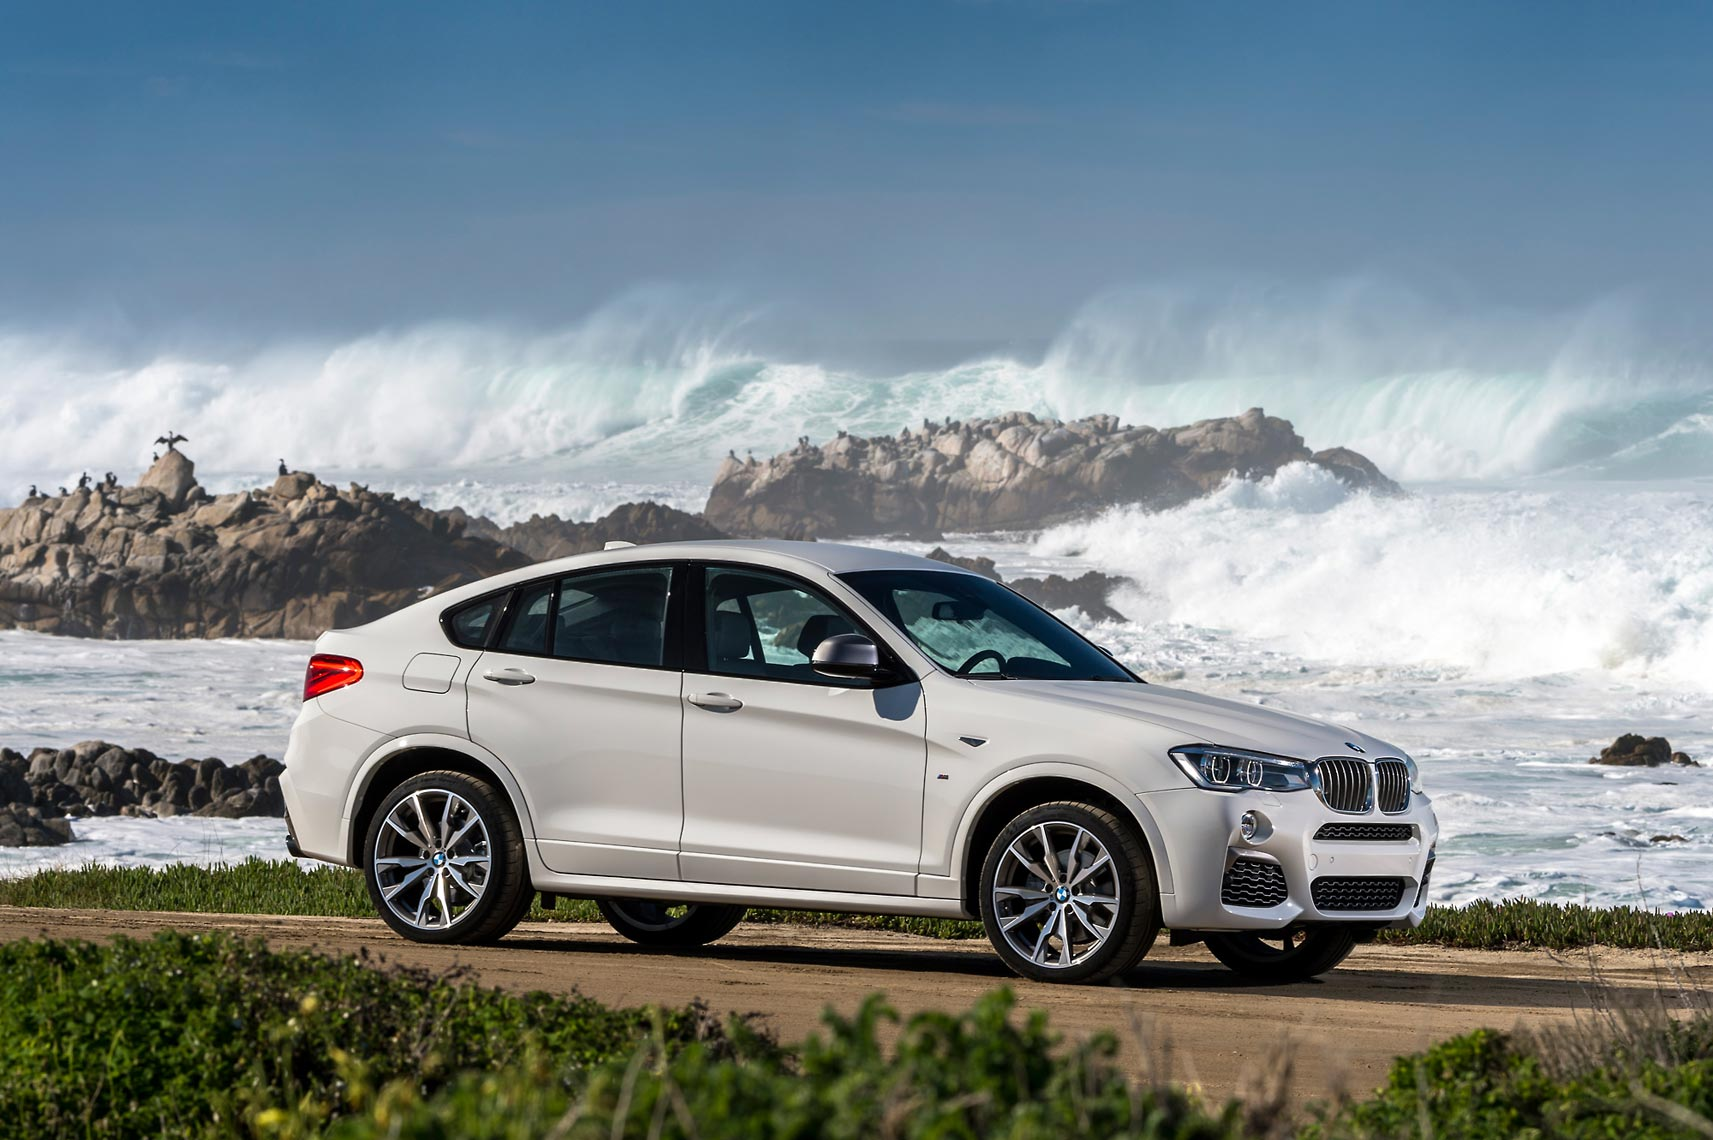 BMW_X4_M40i_008_low_res